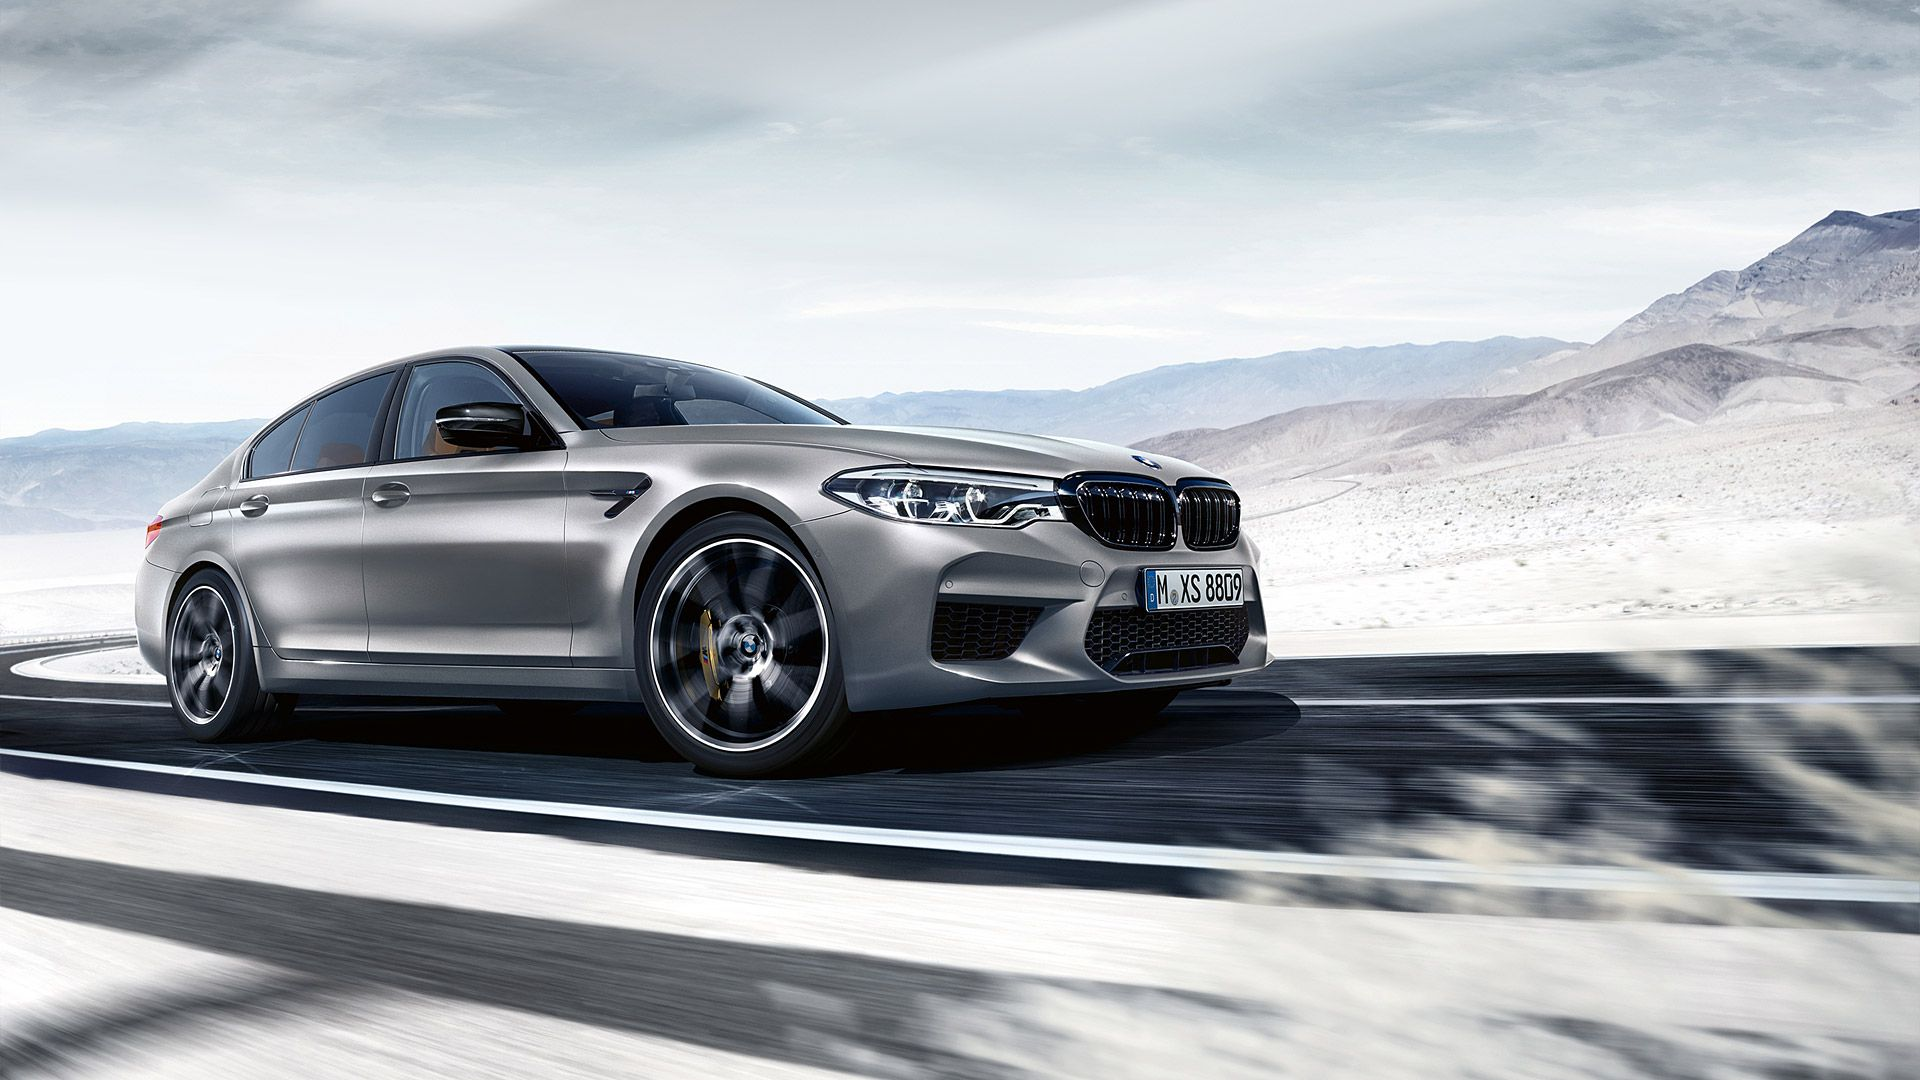 BMW M5 Competition 2020 HD Wallpapers - Wallpaper Cave